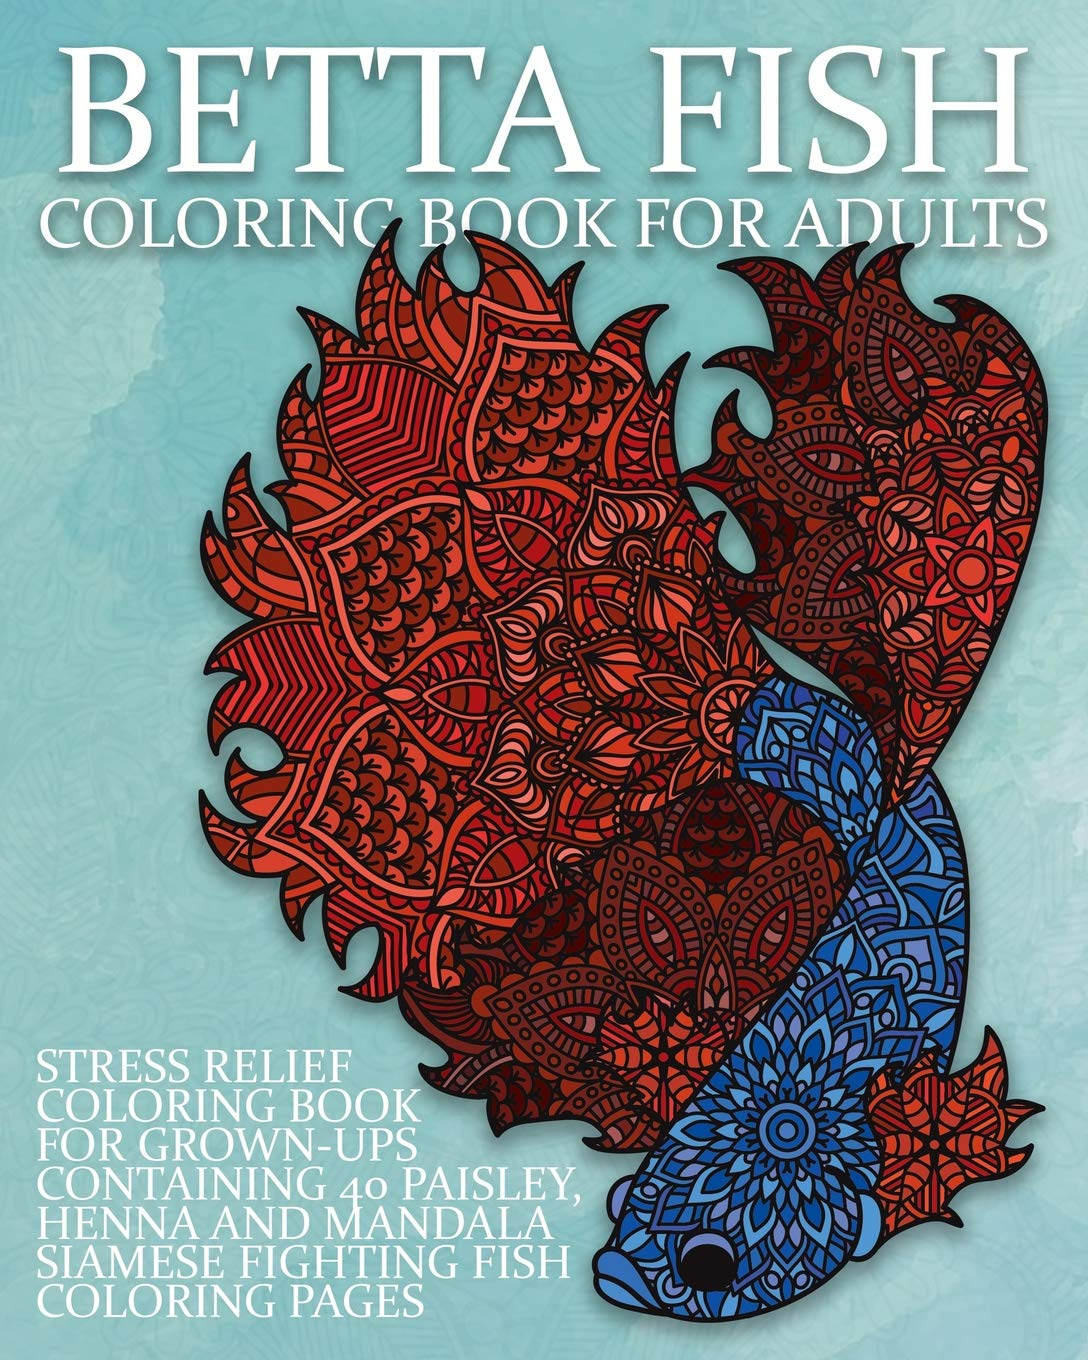 Betta Fish Coloring Book For Adults: Stress Relief Coloring ...